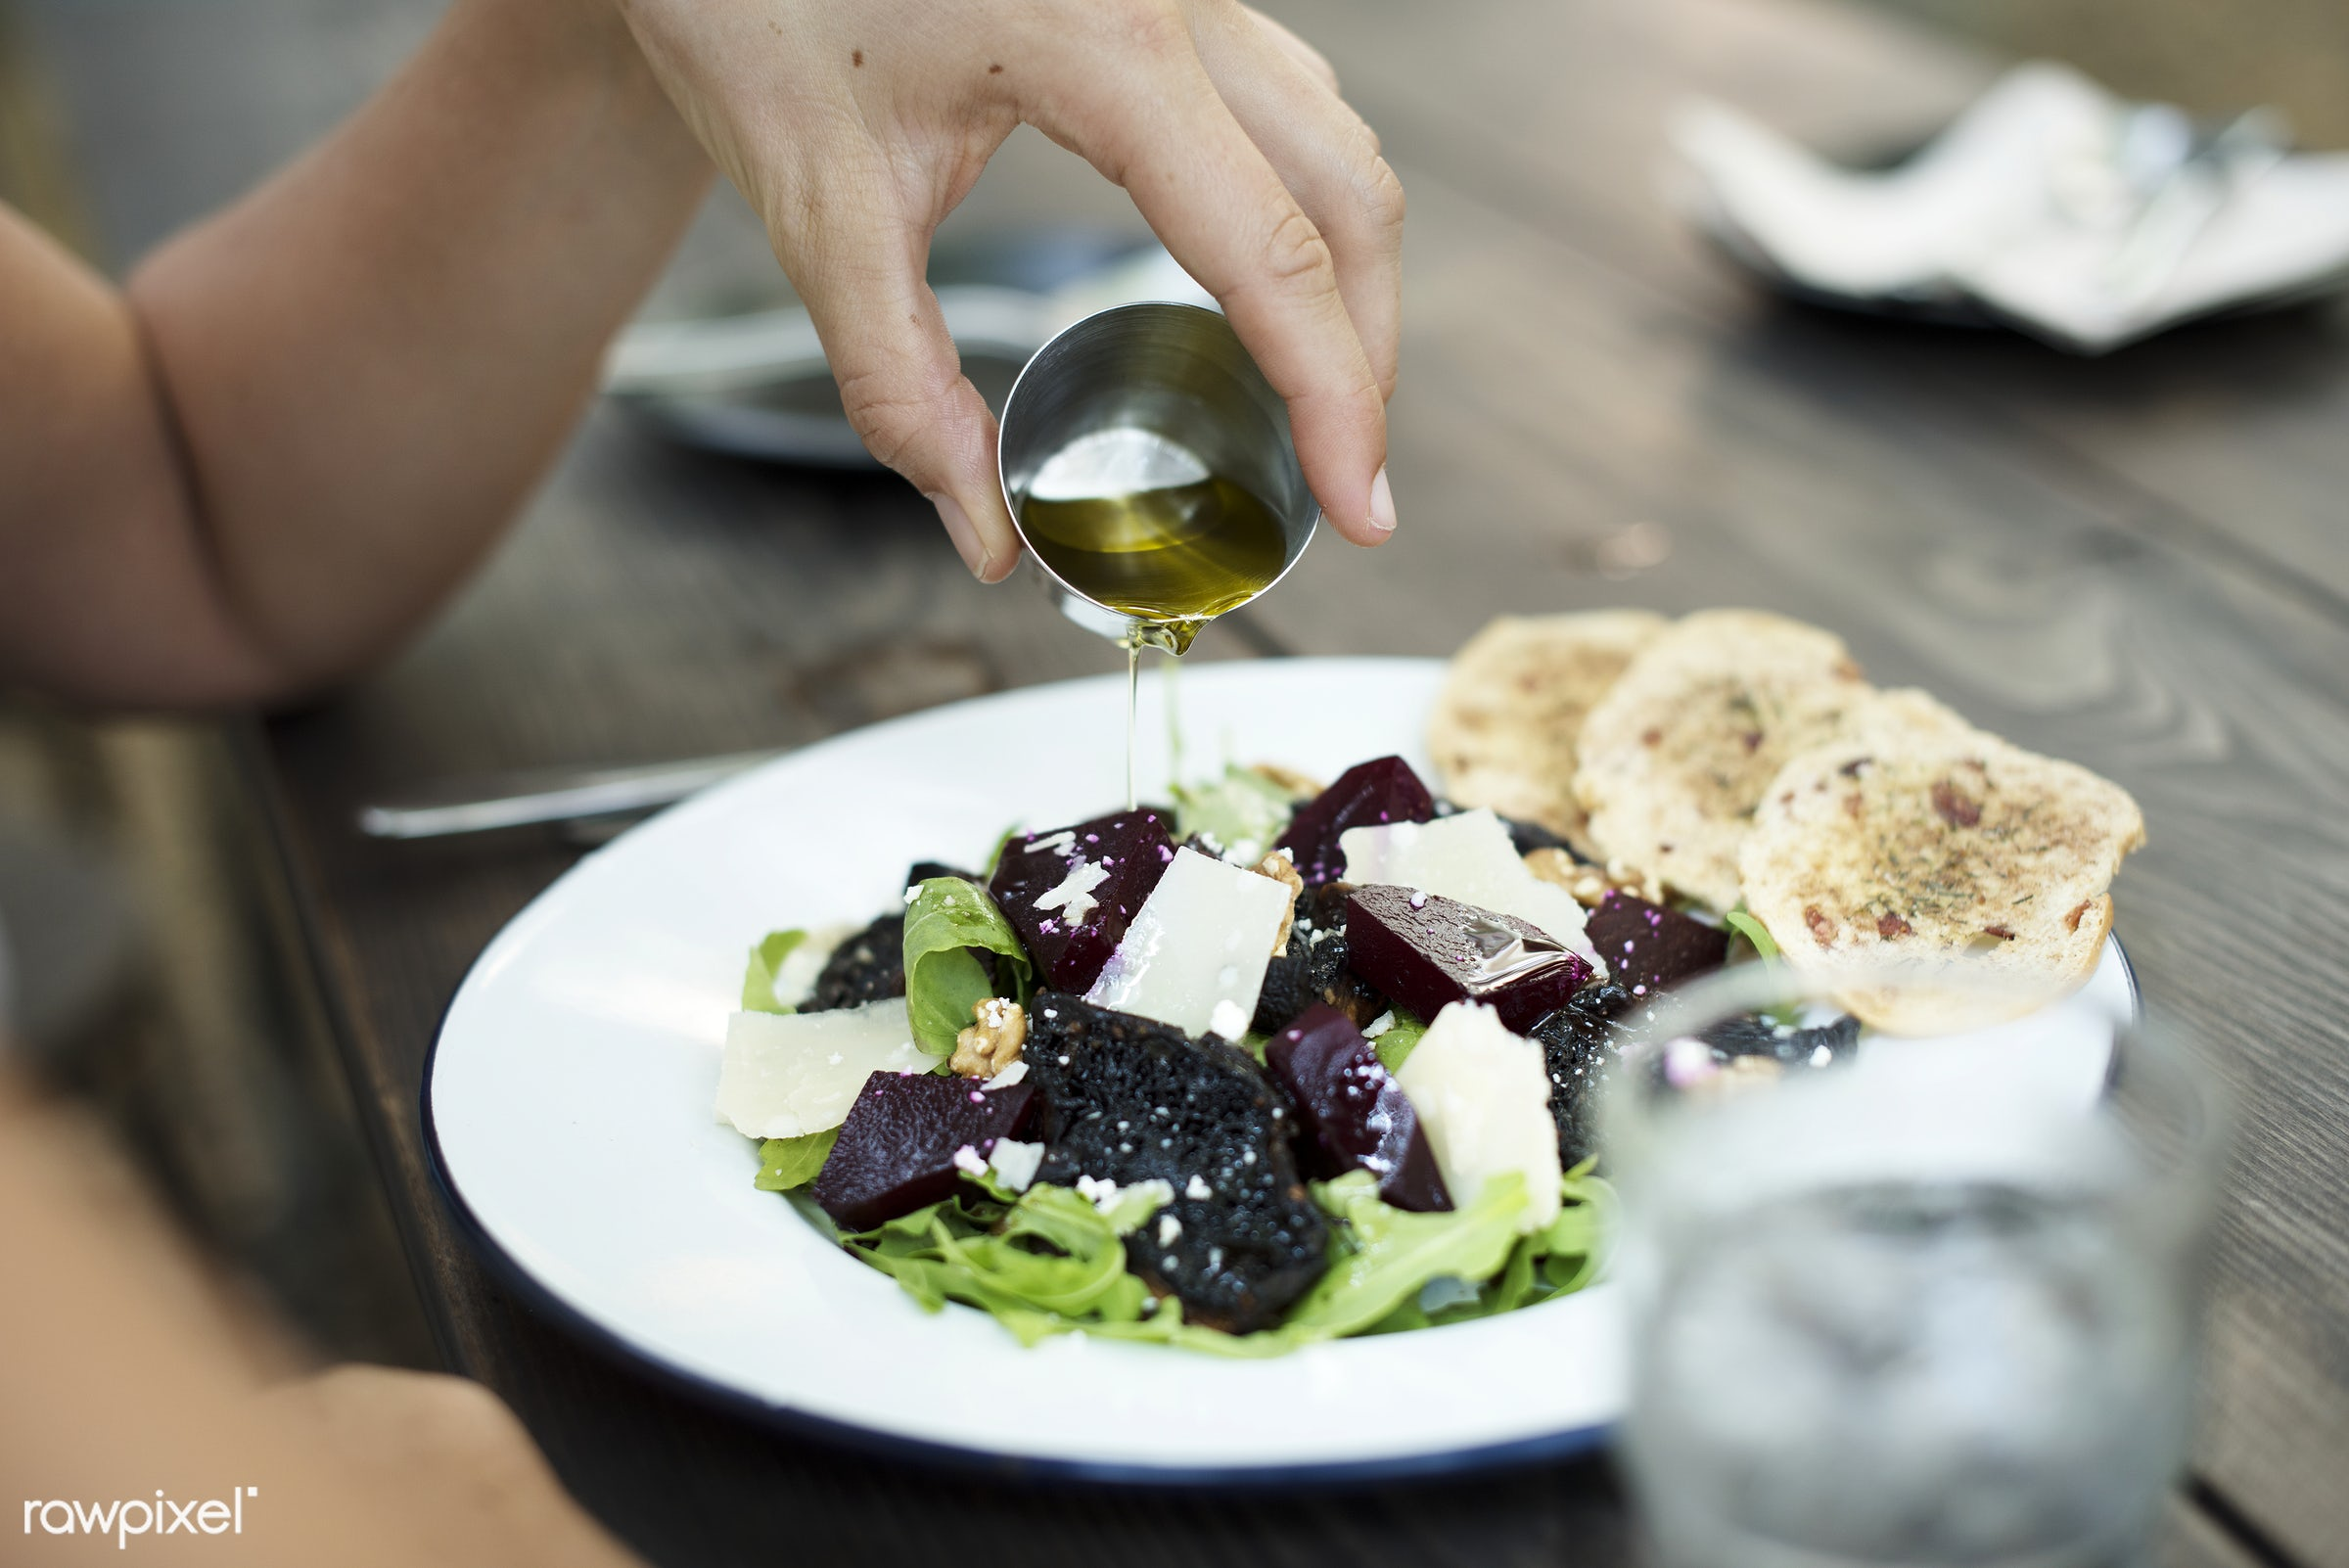 restaurant, oil, food, eating, vegetable, appetizer, cafe, cc0, creative common 0, creative commons 0, cuisine, culinary,...